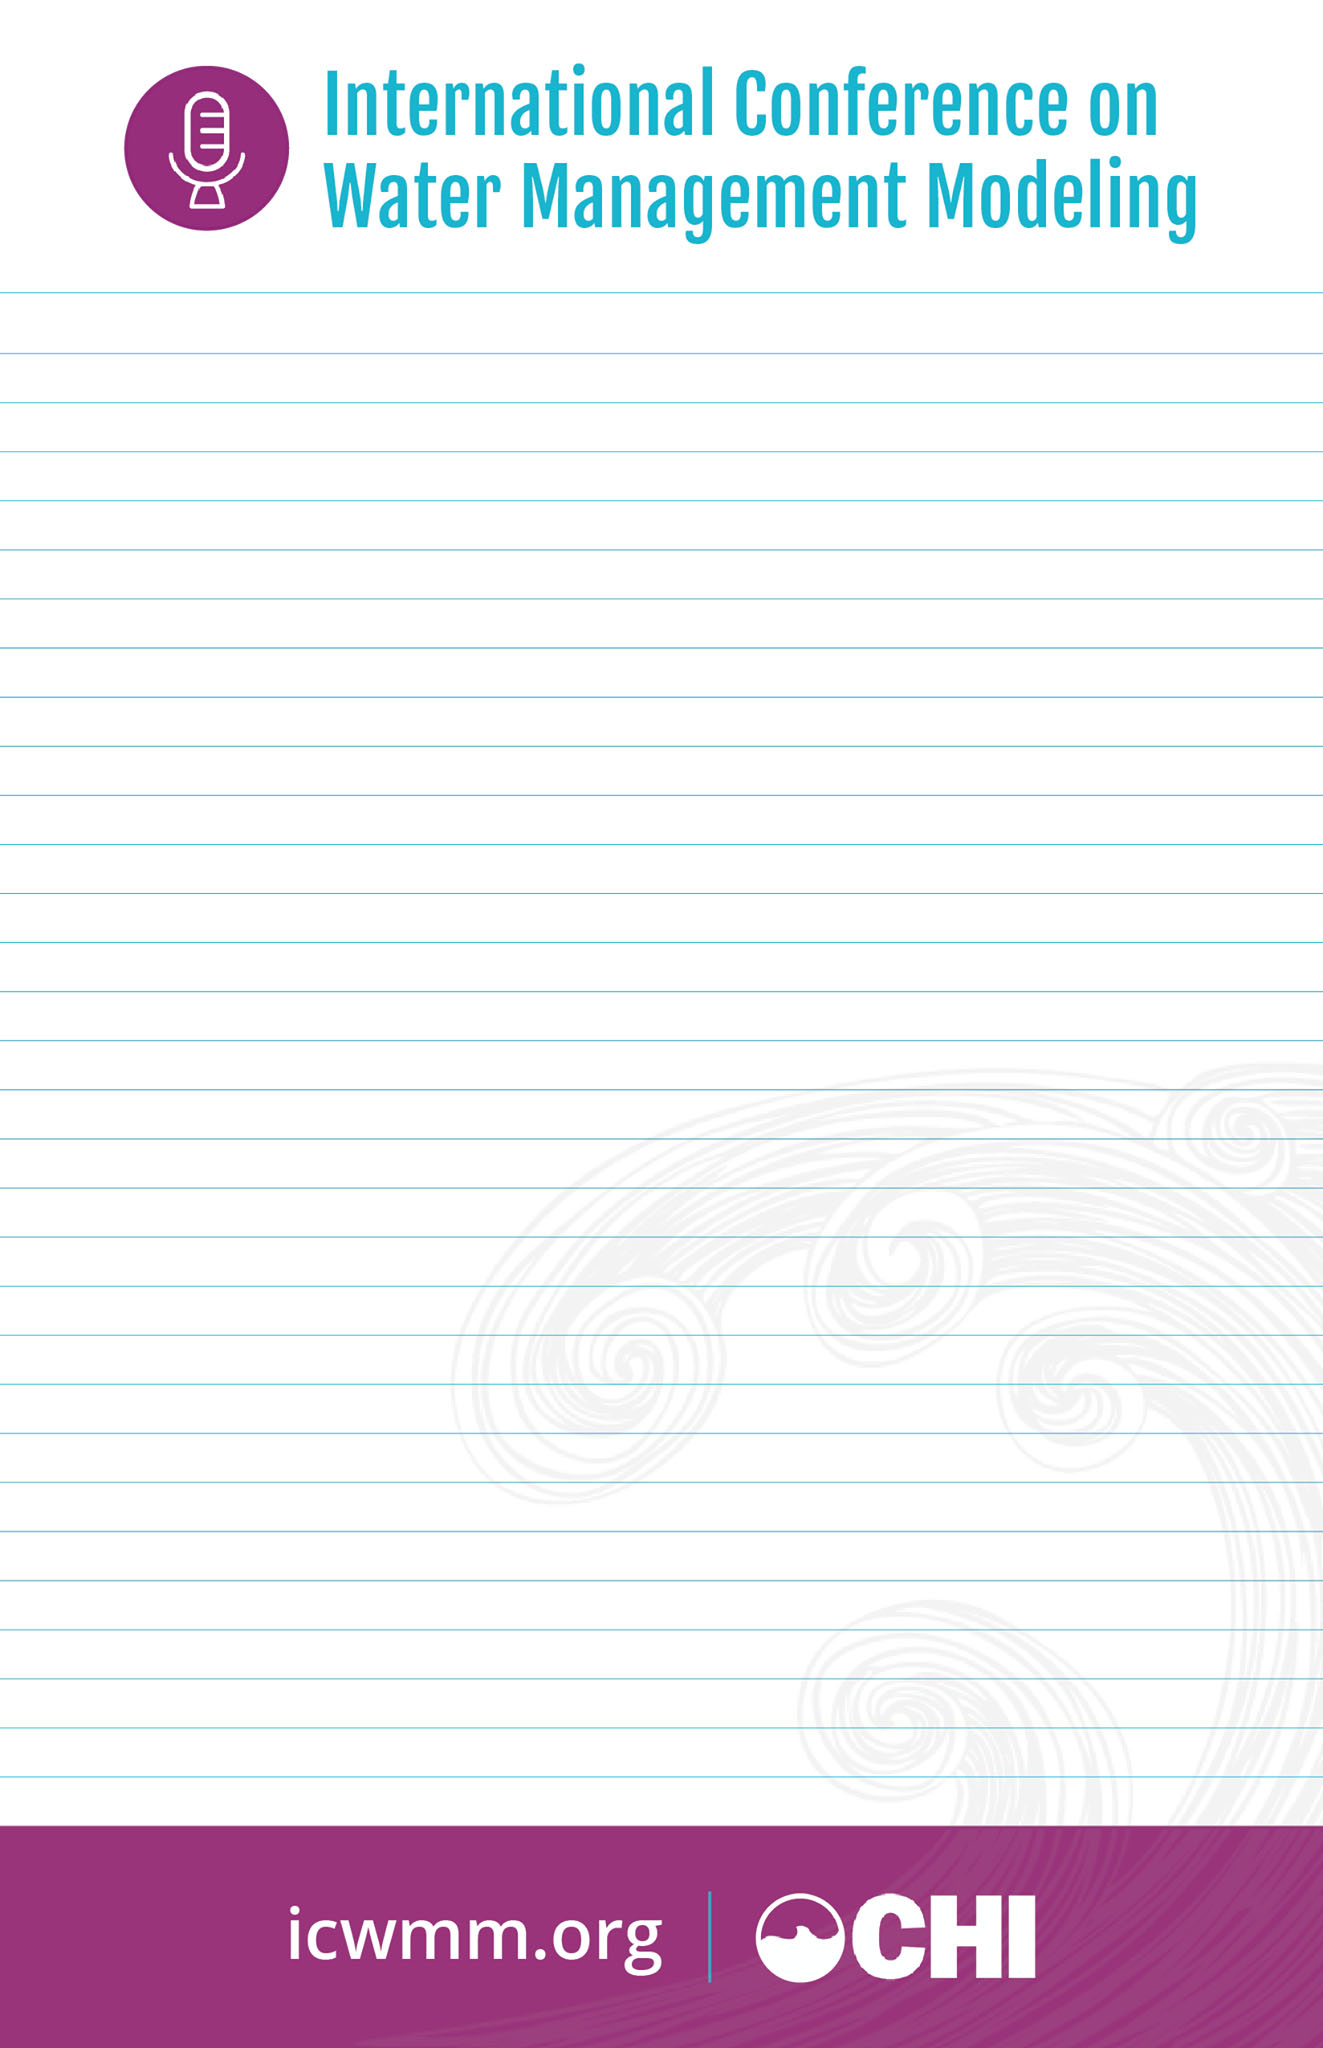 Notepad - Kosmic Creative (Graphic Design).jpg